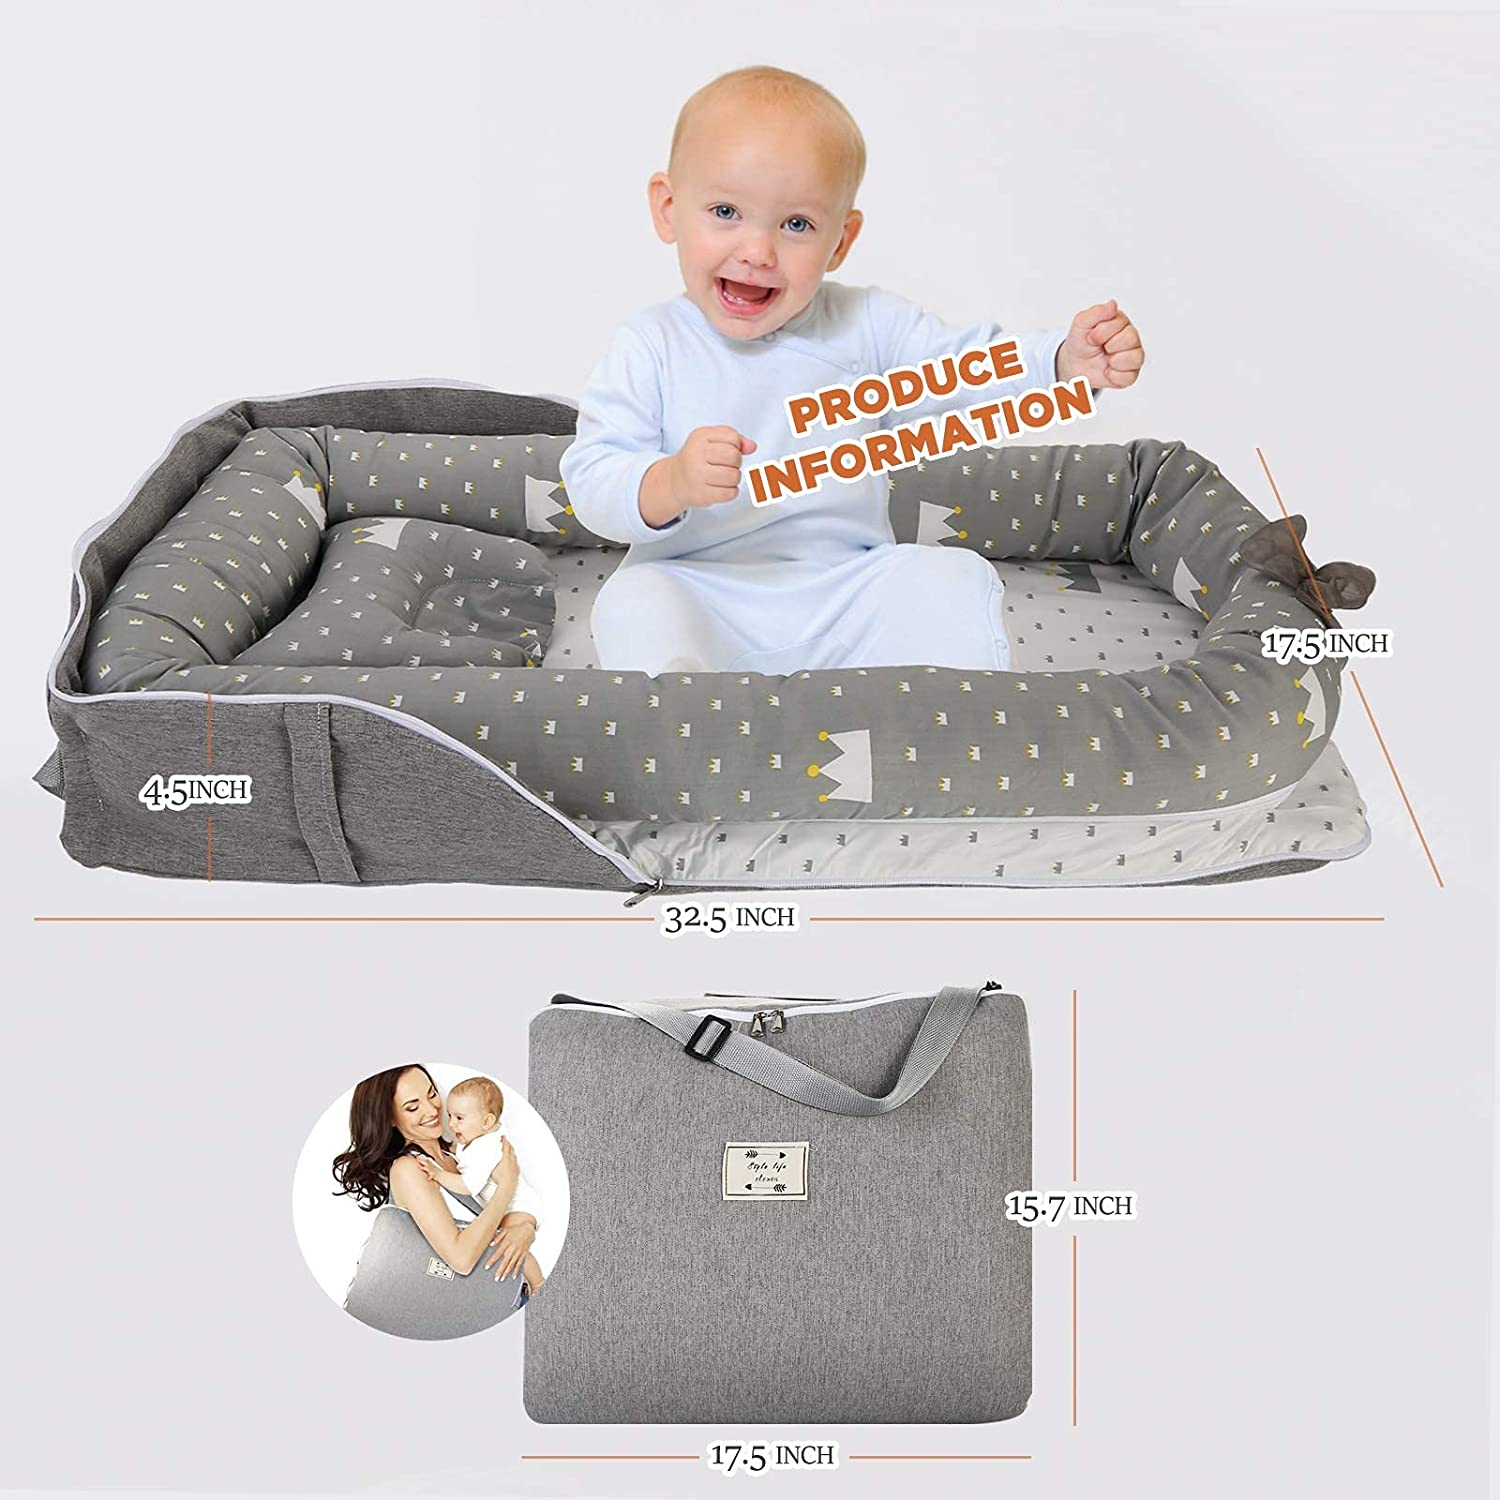 Baby Lounger Baby Nest, Anti-Roll Co-Sleeping Bed for Baby, GORSETLE Ultra Soft & Breathable Portable Newborn Lounger Crib Bassinet(Crown)